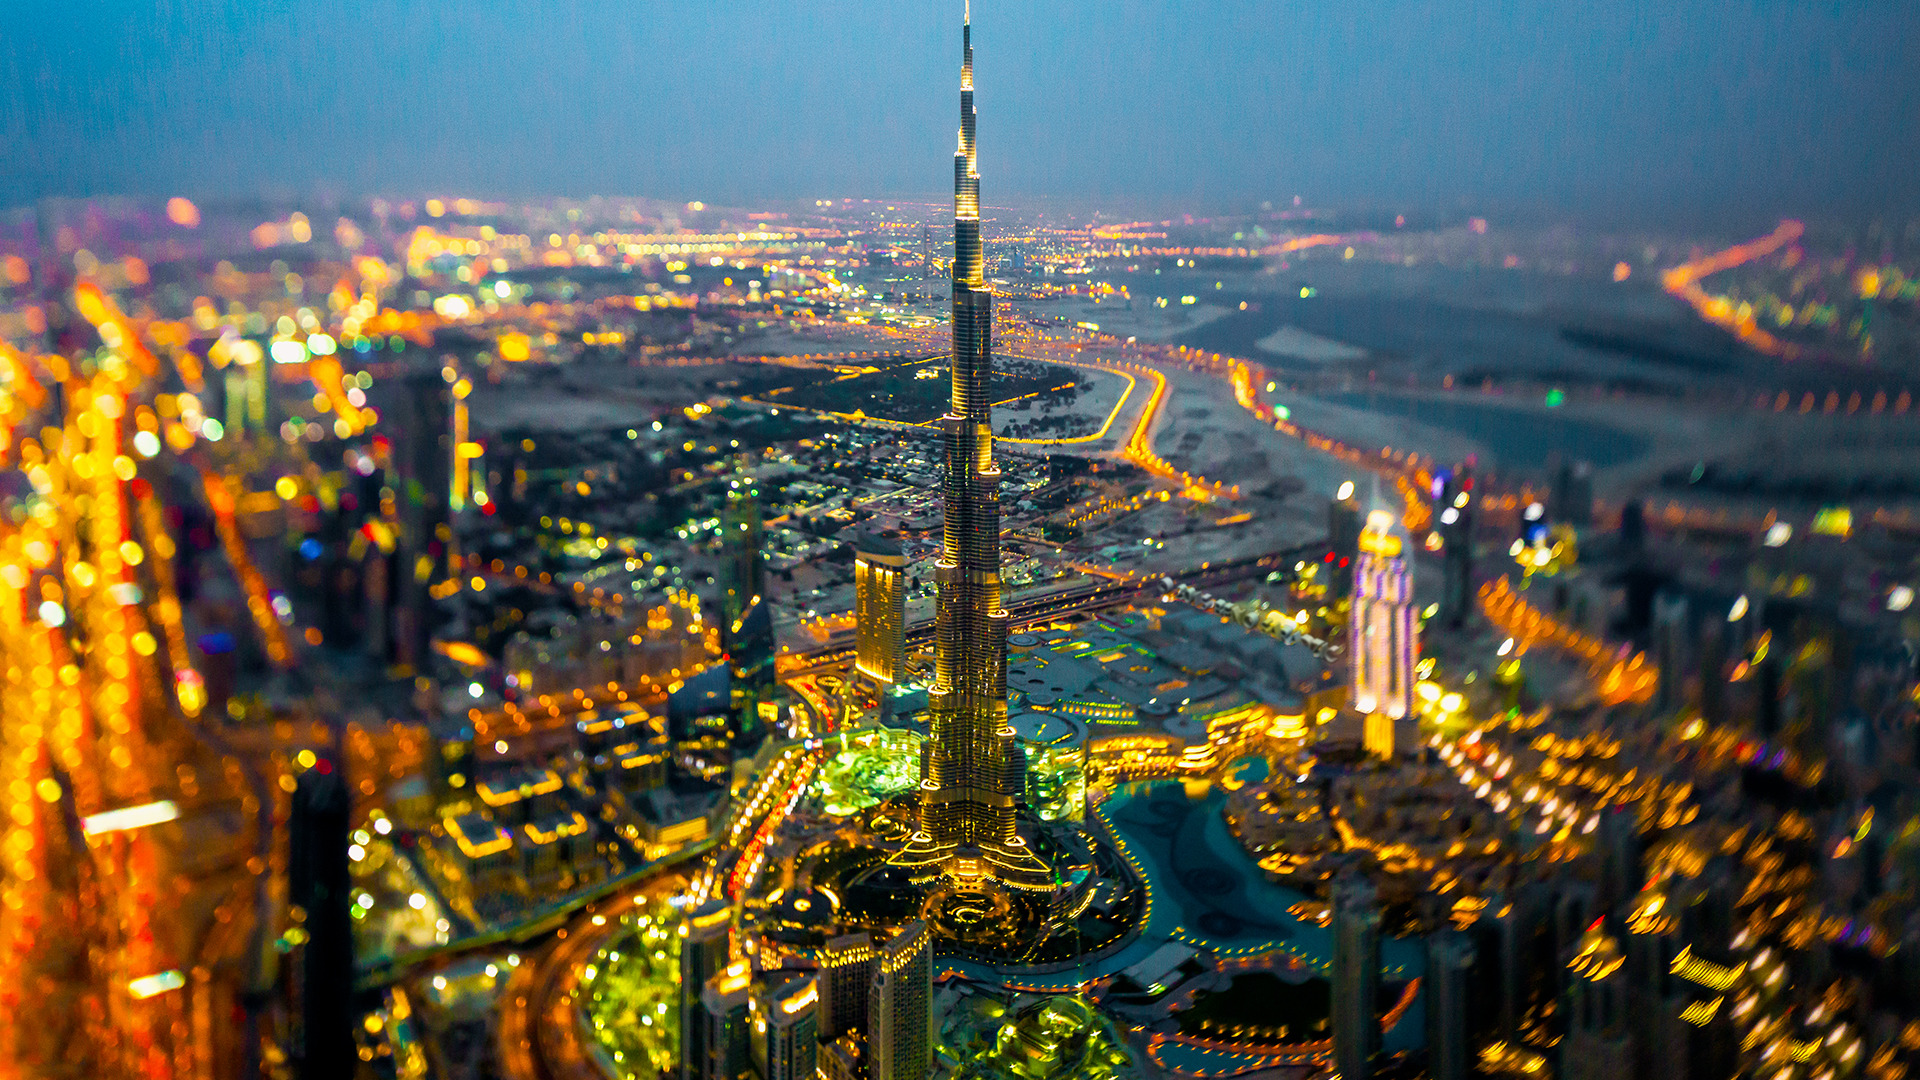 General 1920x1080 city cityscape building skyscraper tilt shift Burj Khalifa Dubai night city lights depth of field